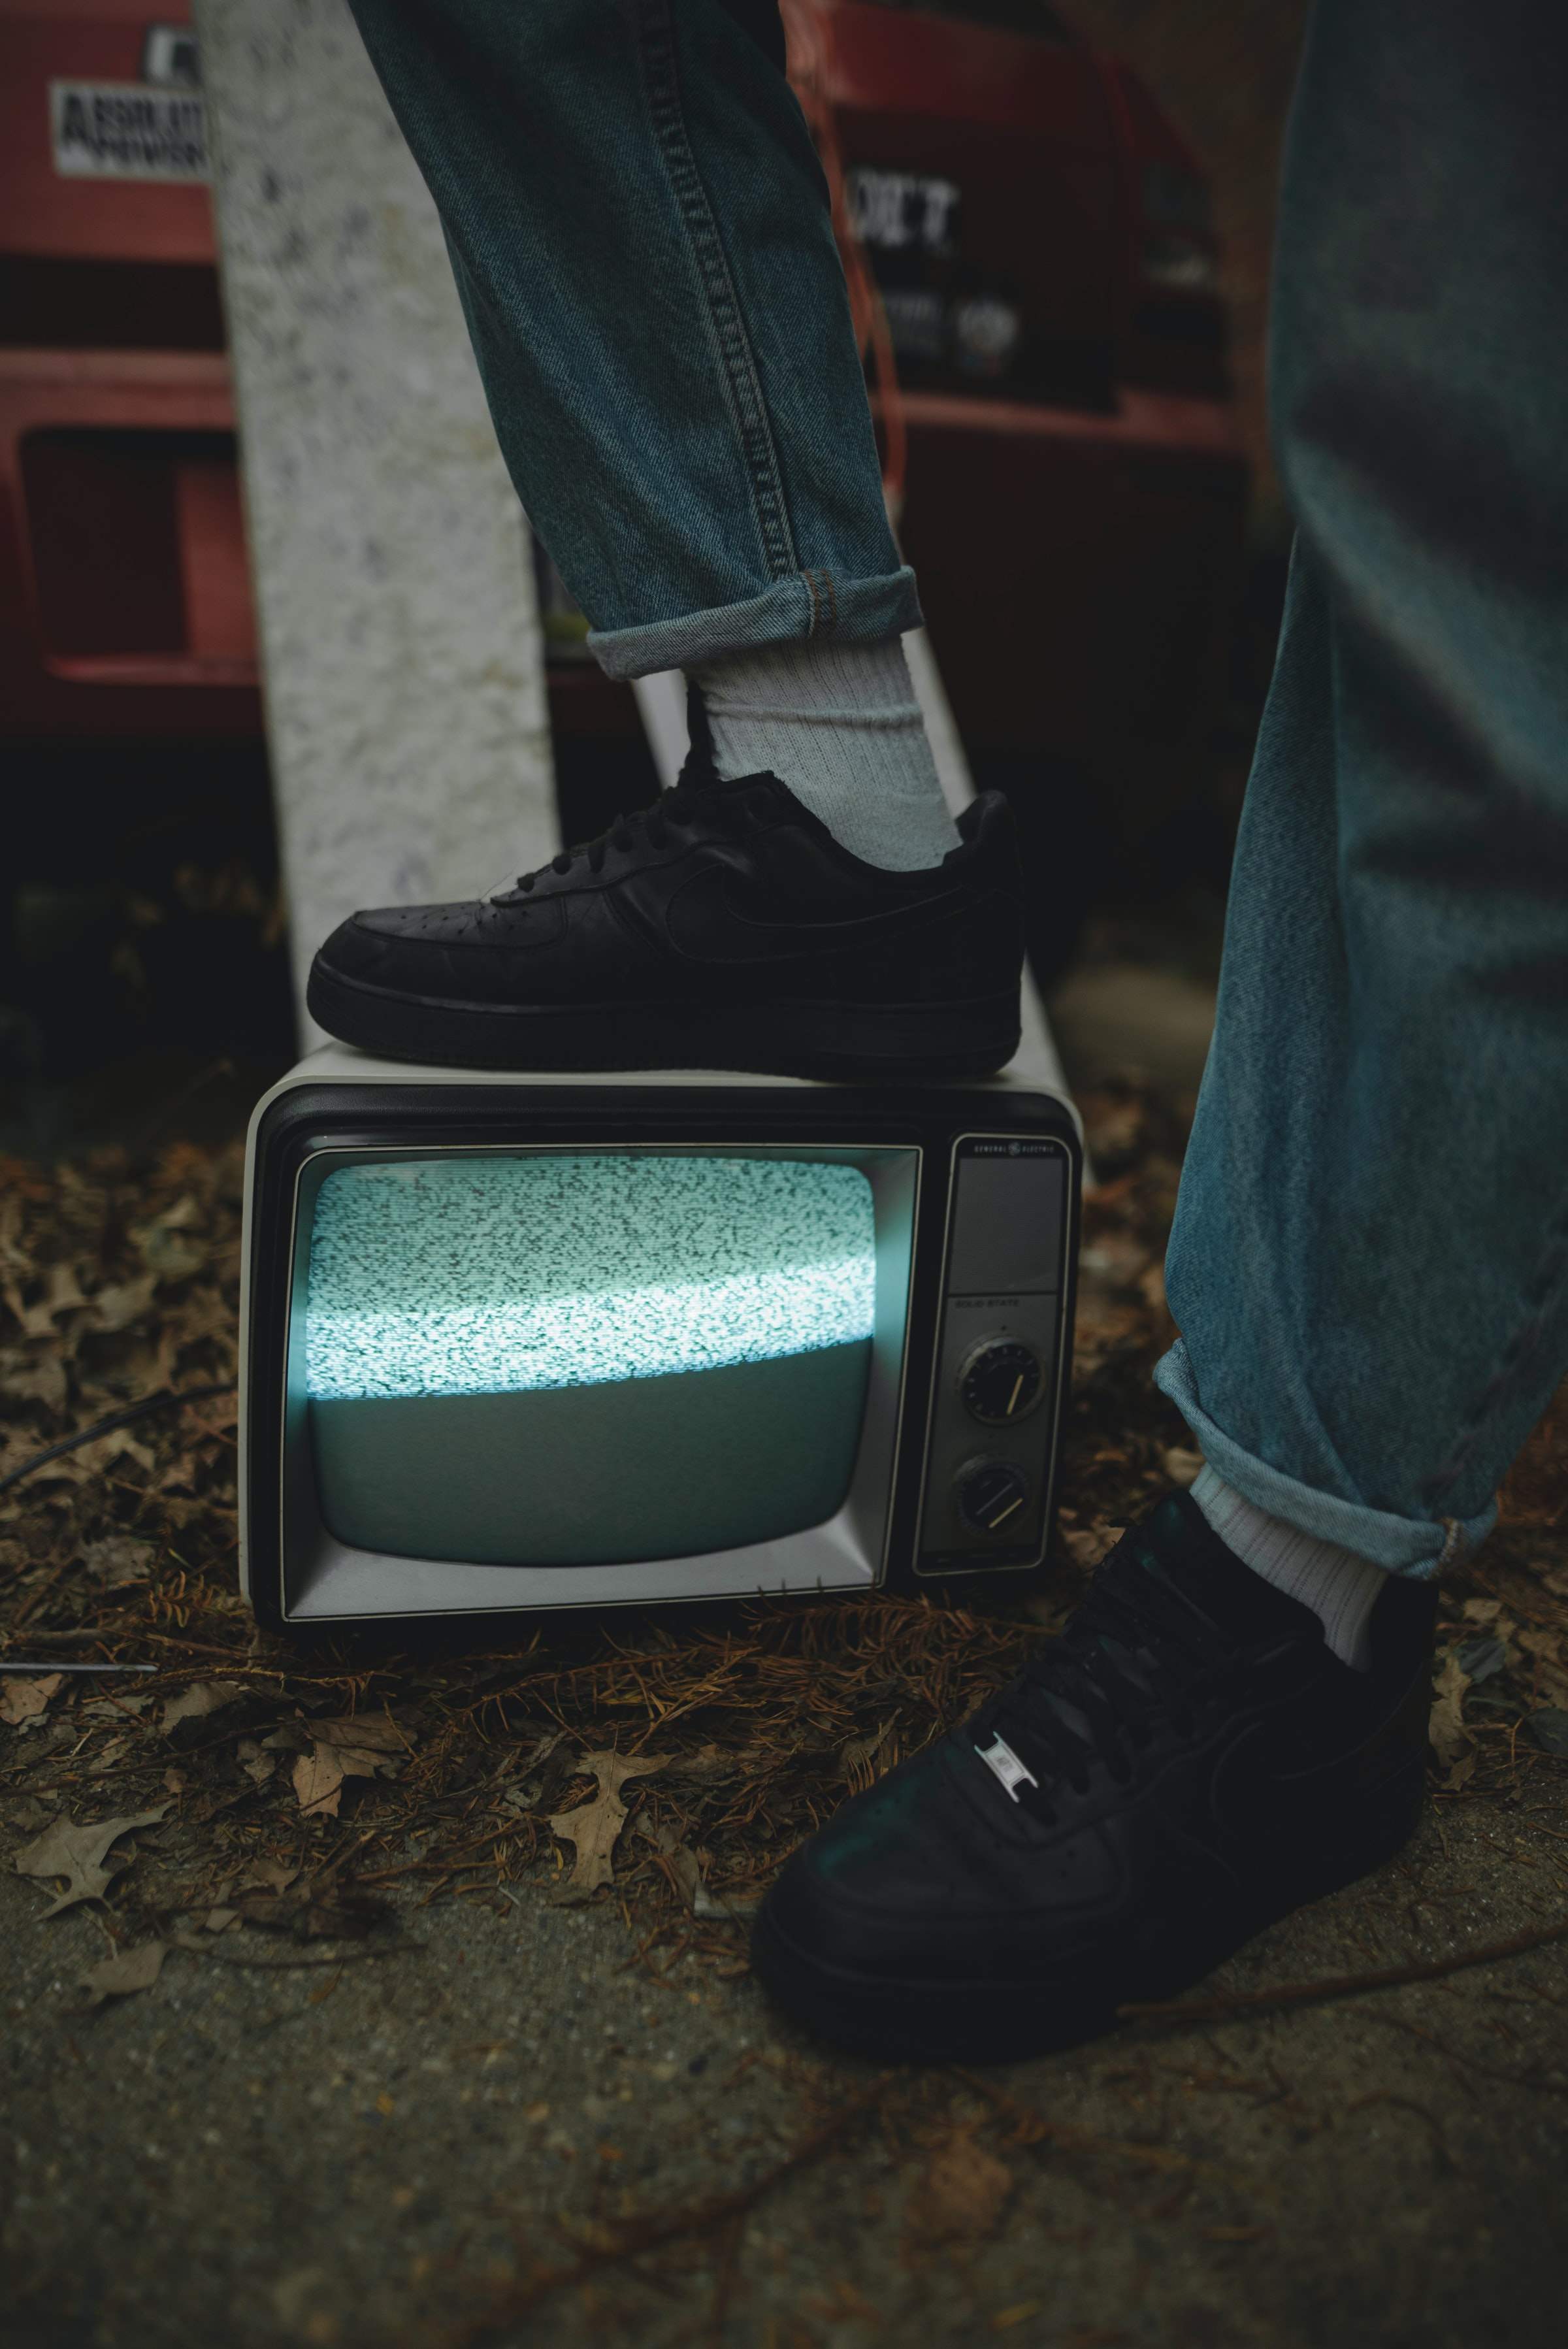 121919 download wallpaper Miscellanea, Miscellaneous, Legs, Sneakers, Screen, Television, Television Set, Jeans screensavers and pictures for free